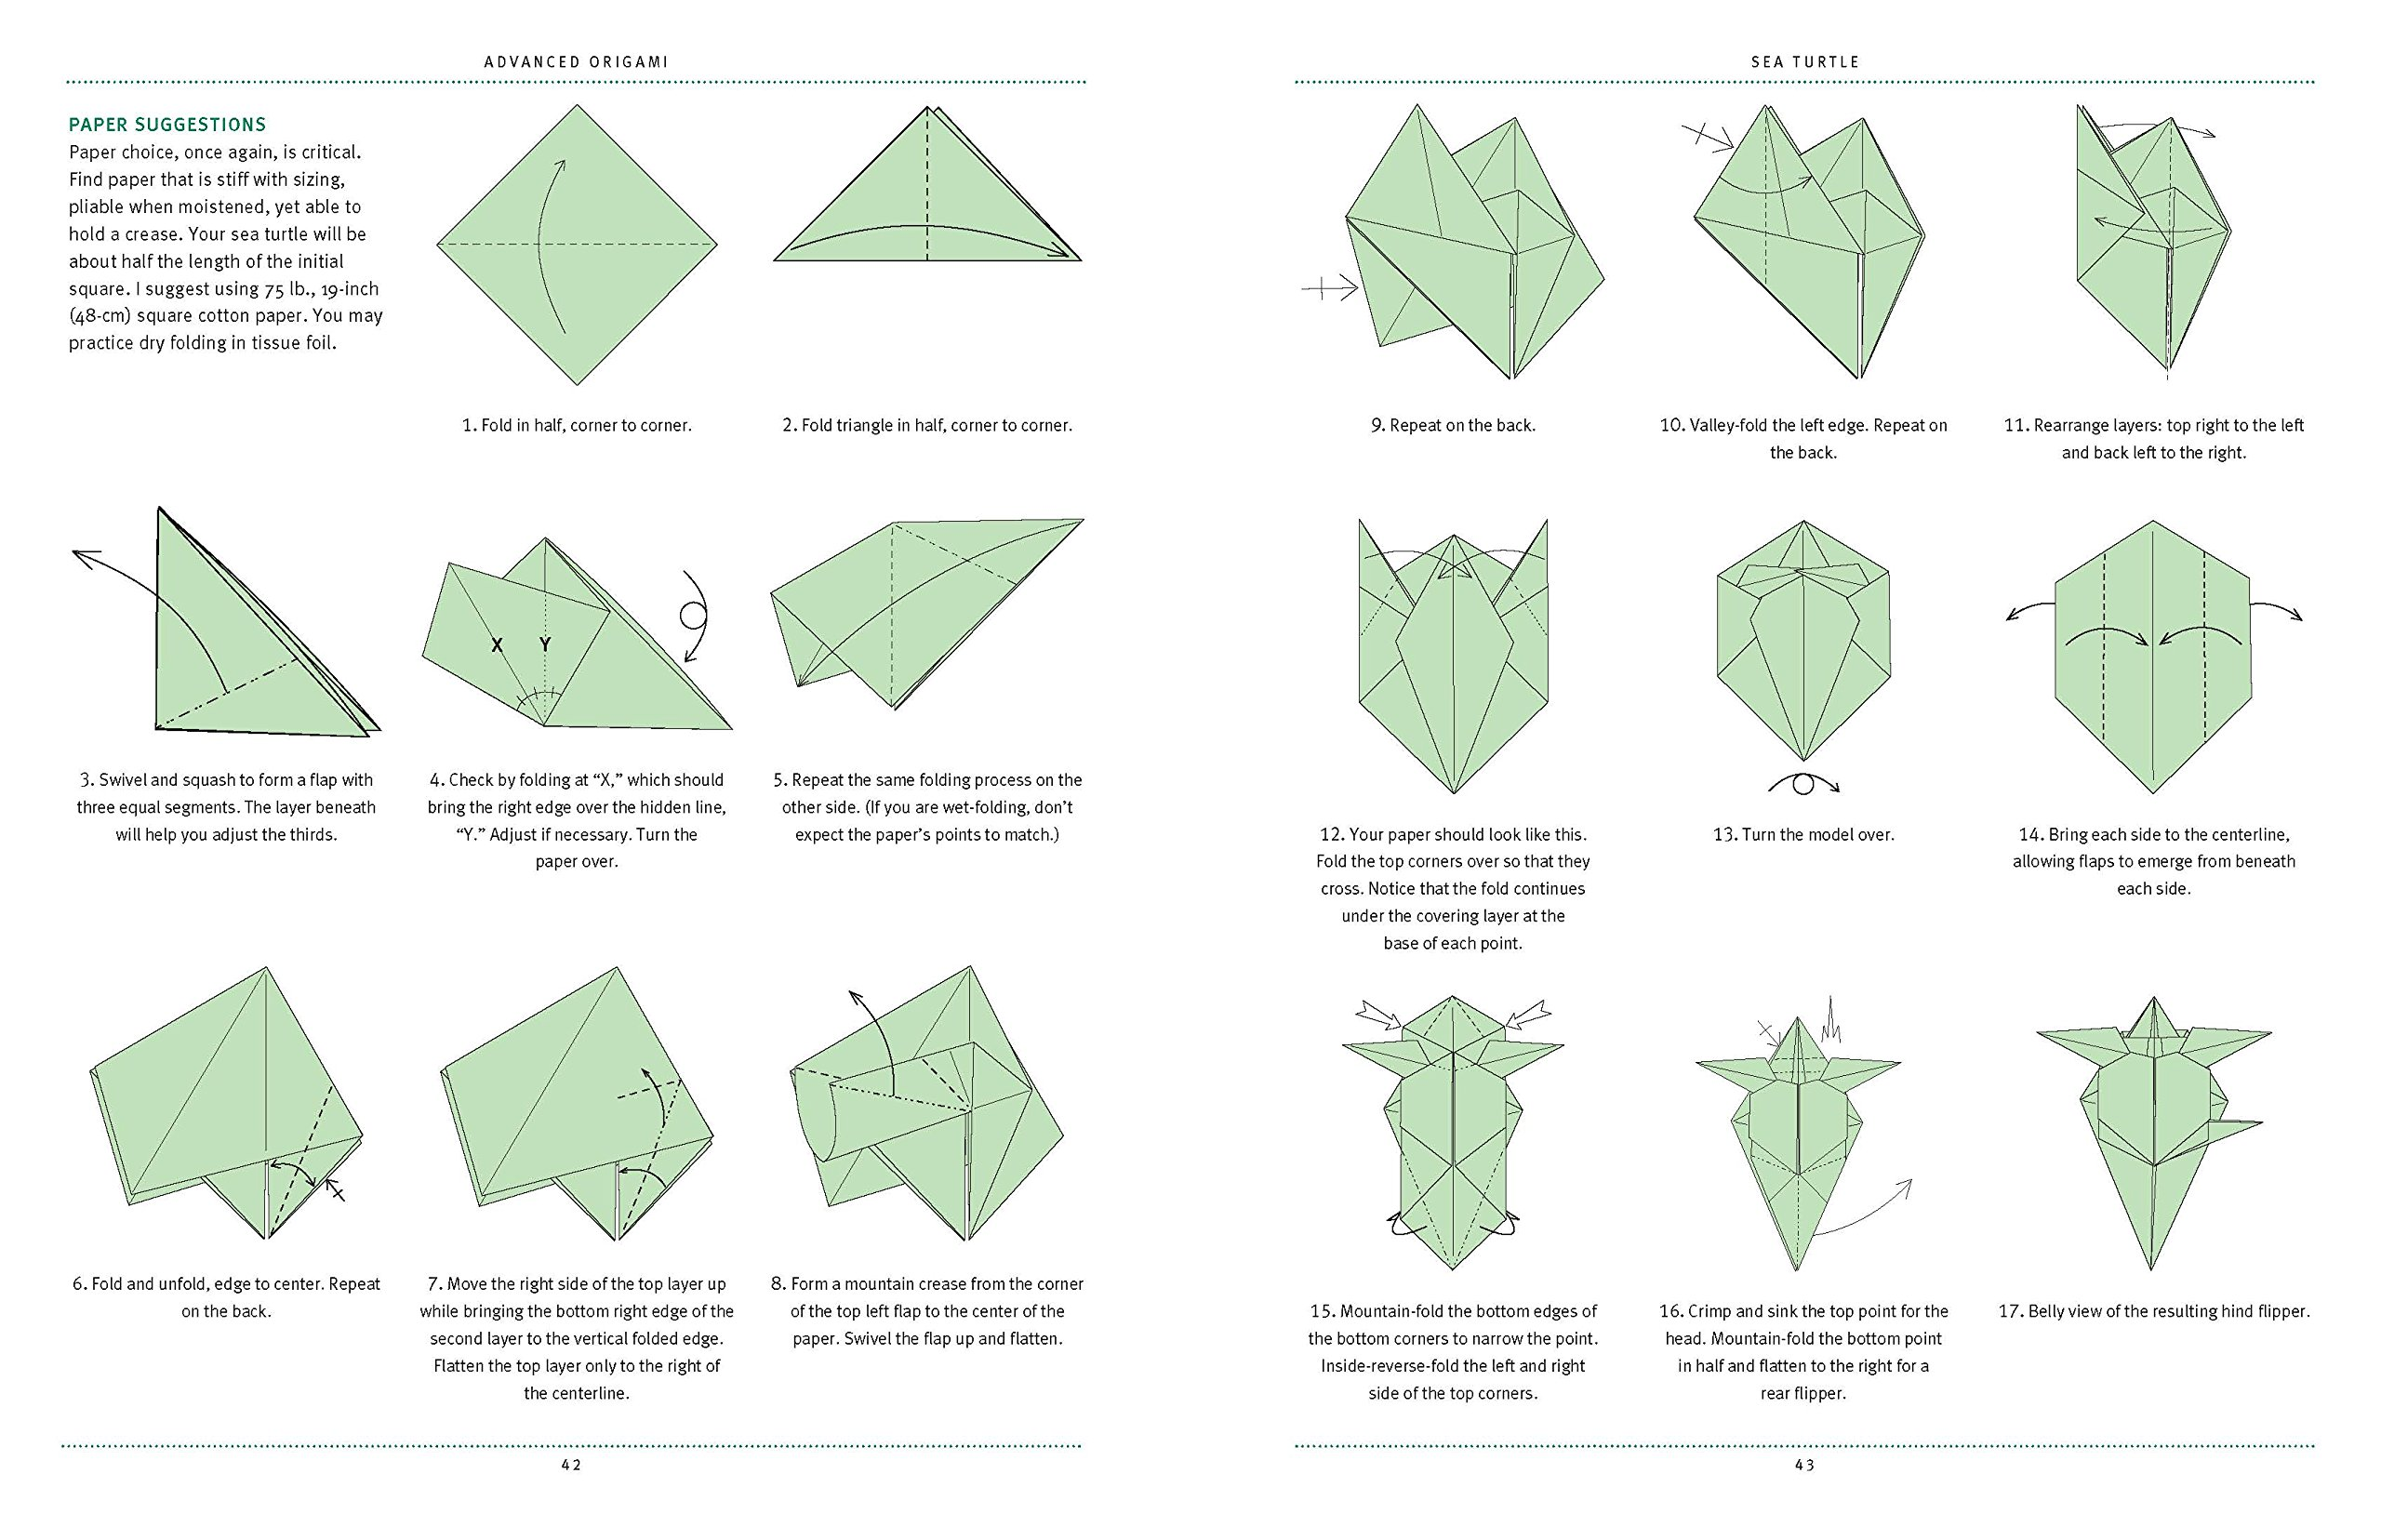 Fish Base Origami Free 3d Diagrams Download Livre Racer Muneji Advanced An Artists Guide To Folding Techniques And Paper Book With 15 Original Challenging Projects